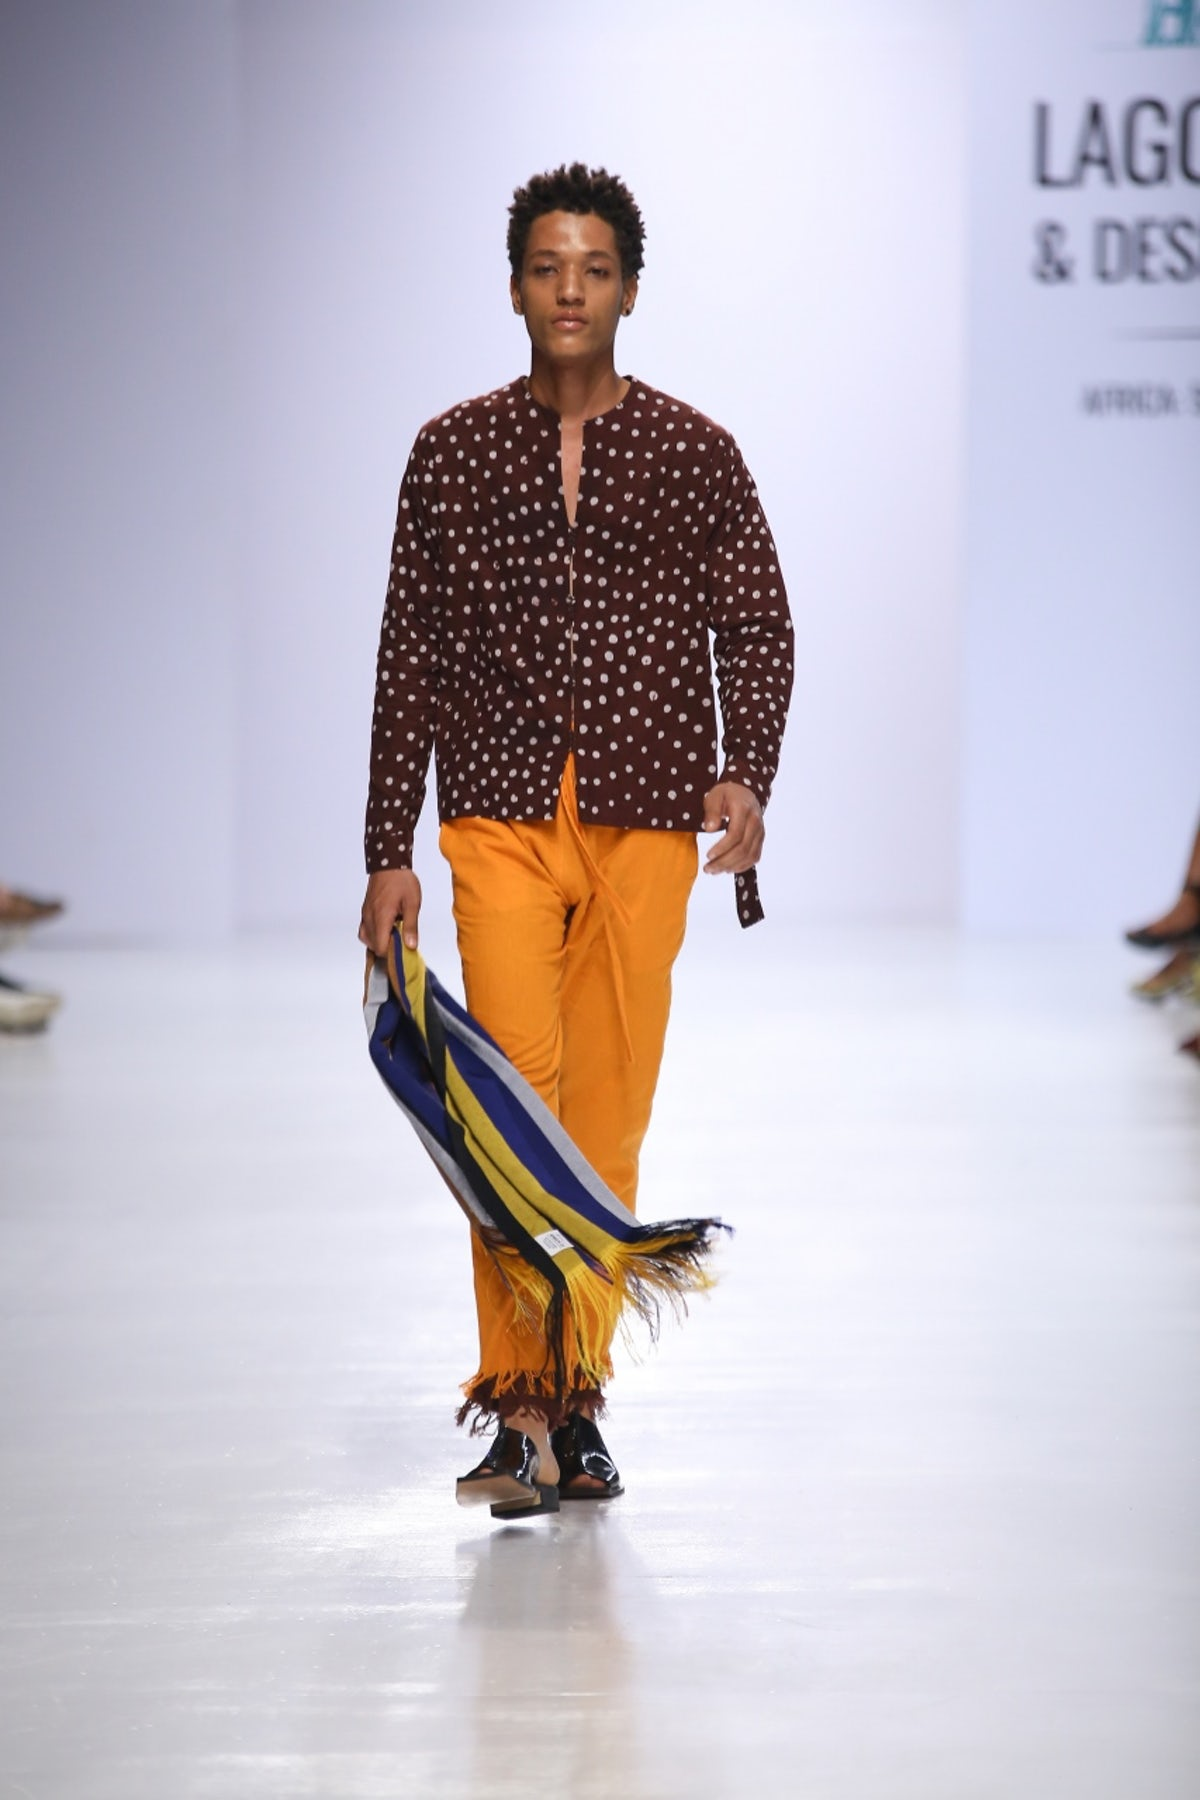 kenneth_ize_look_12_ready_to_wear_spring_2018.jpeg